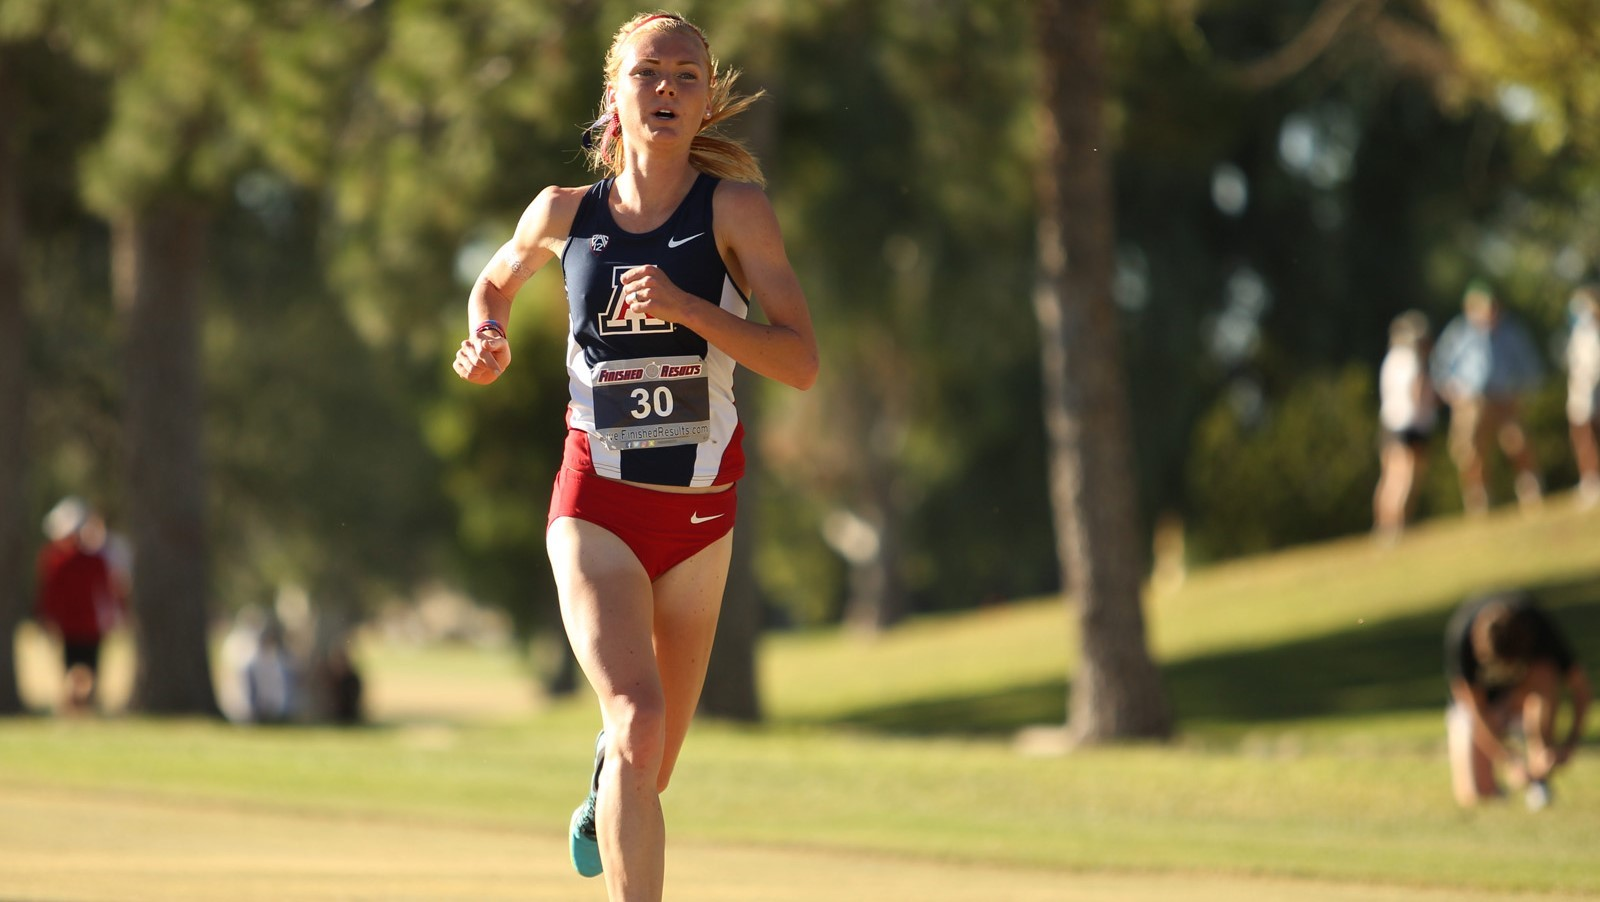 Addi Zerrenner, 23, made her debut at Grandma's Marathon and qualified for the U.S. Olympic Marathon Trials